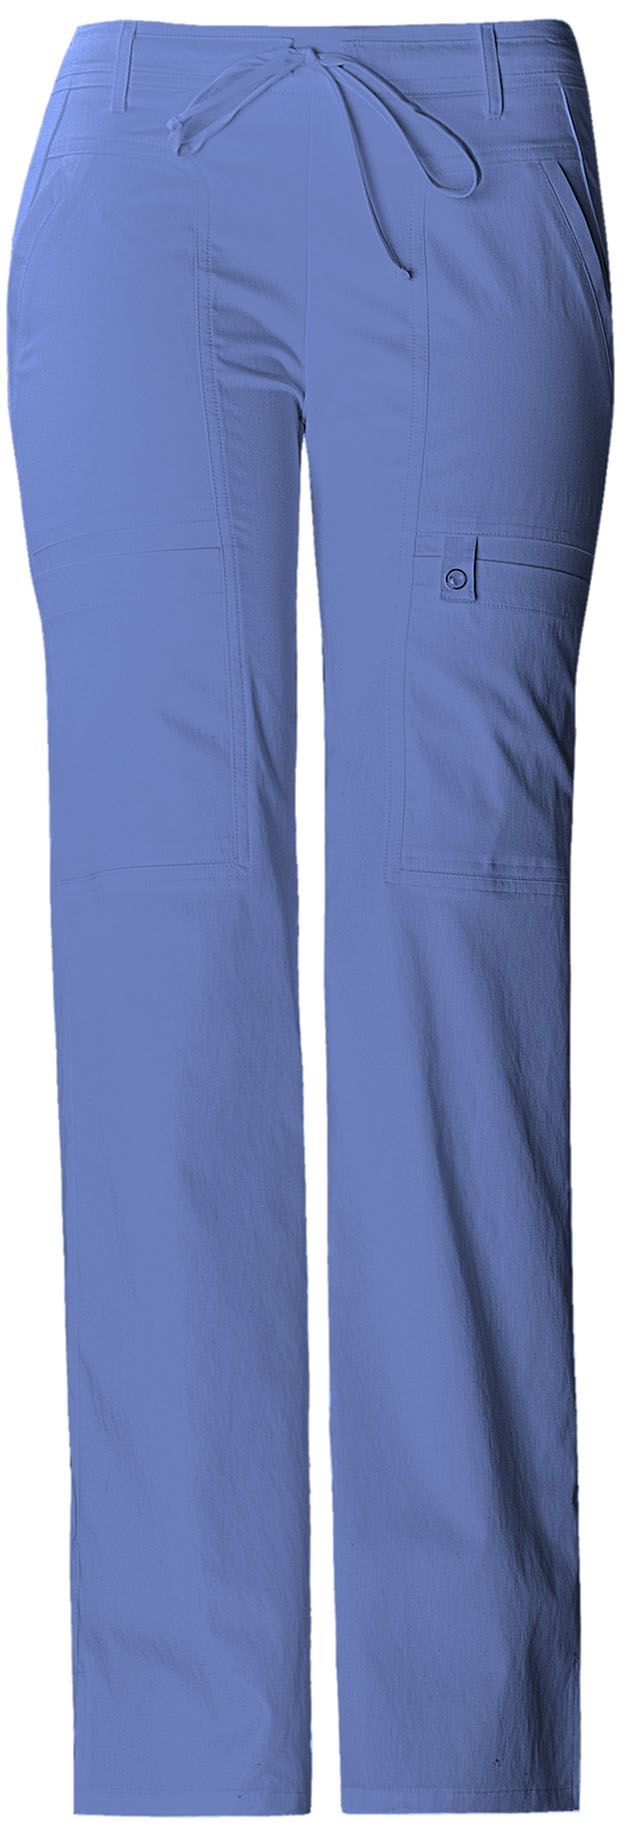 A Junior fit low-rise, flare leg, adjustable front drawstring pant with back elastic waist, has a novelty yoke at the hip, front angled pockets, cargo pockets on both legs. Additionally, the left pocket has a instrument loop with a functional logo snap. A side seam panel at the back leg, side vents, and double needle topstitching complete this innovative pant. Inseam: 31""